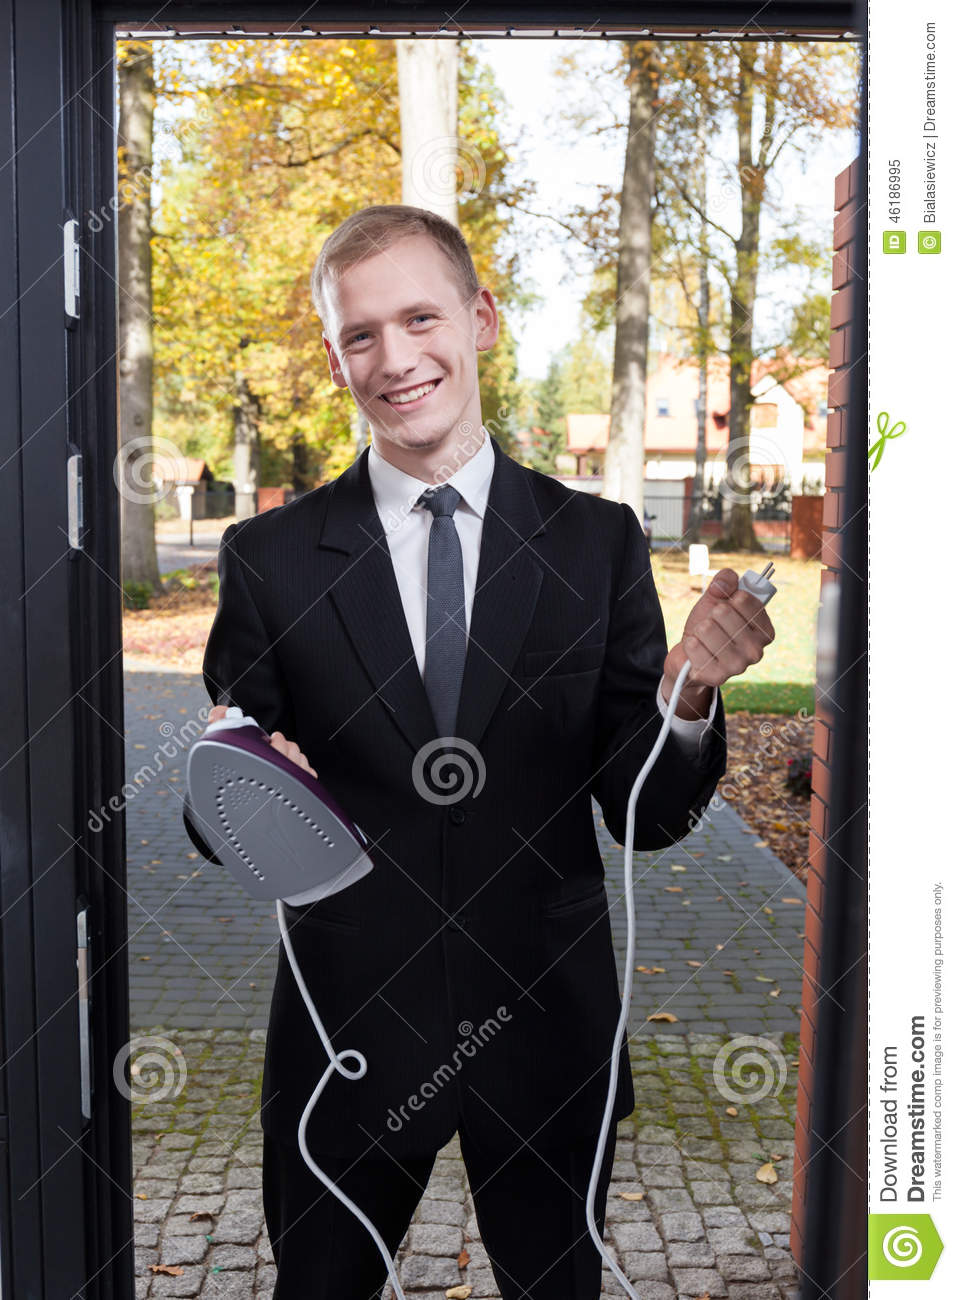 Canvasser trying to sell the iron